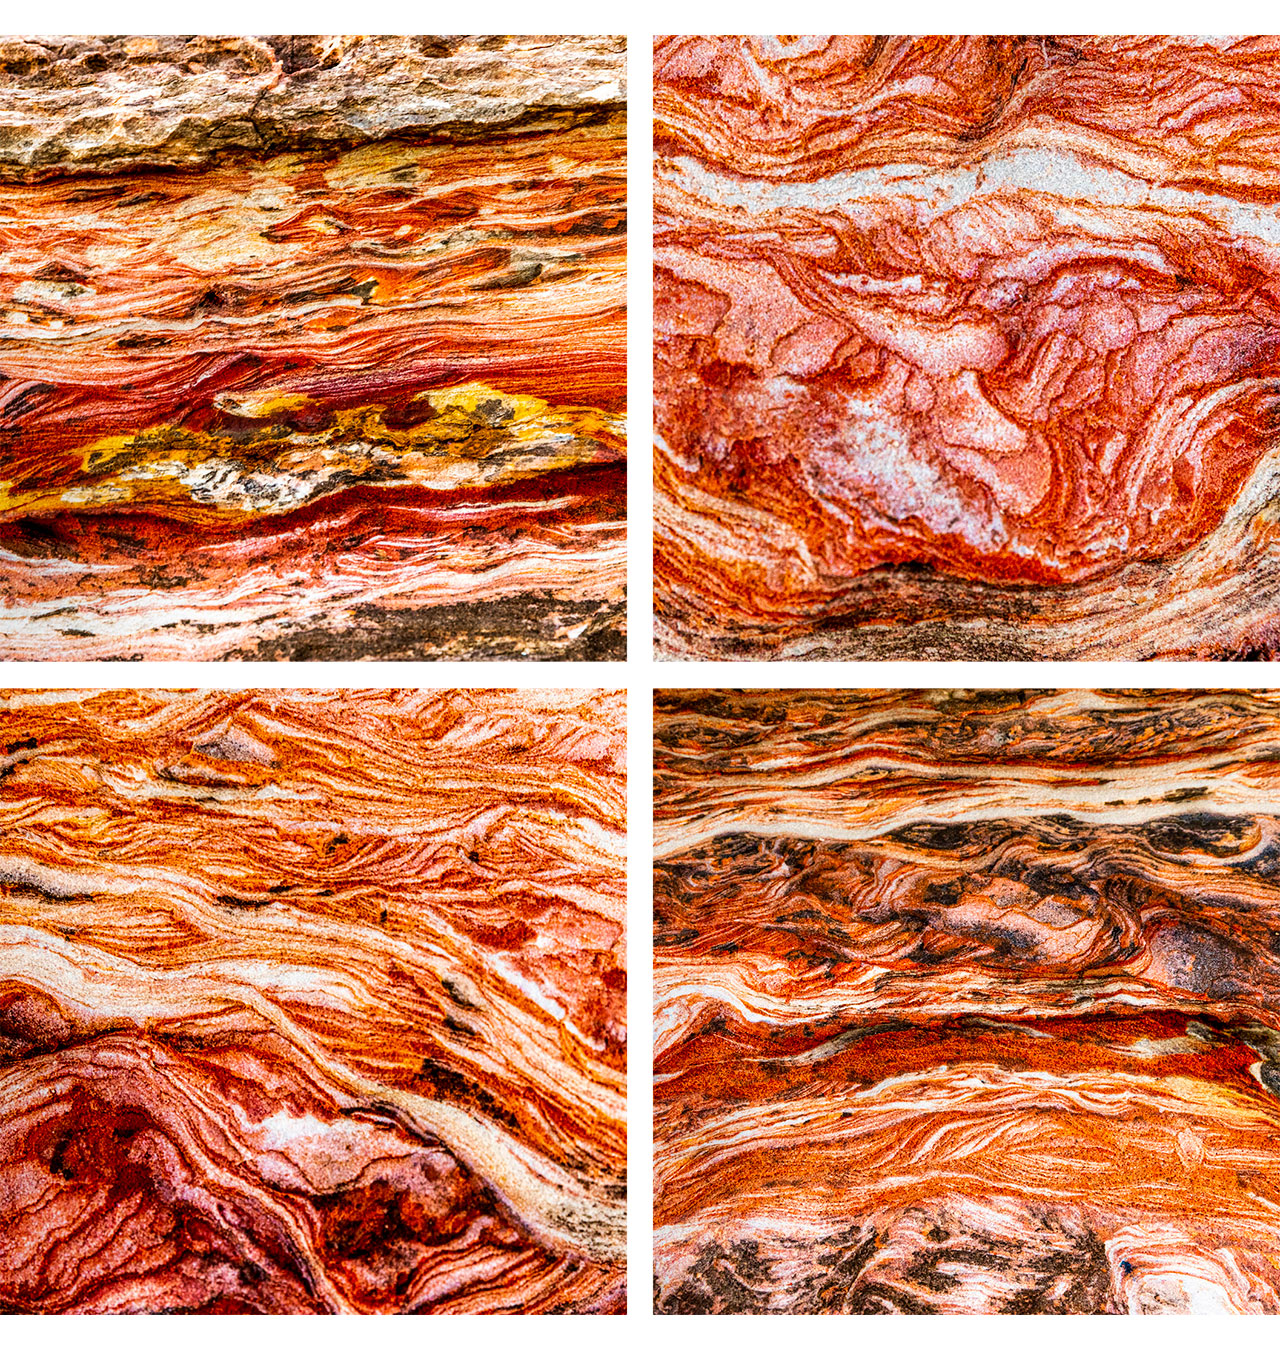 Montage of patterns found in the rocks at Town Beach in Broome, Western Australia